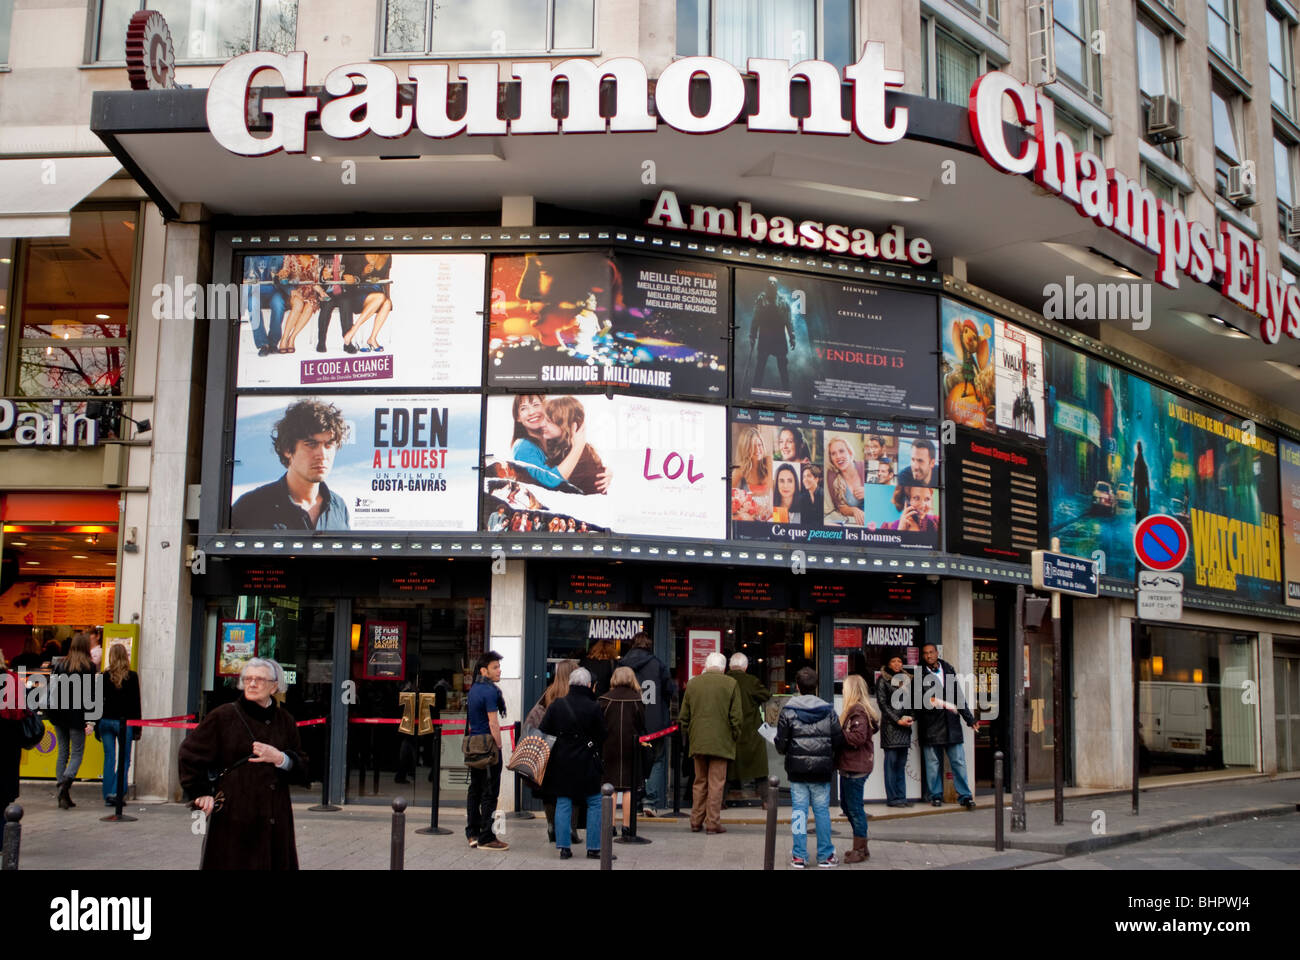 paris france cinema theater outdoors gaumont movie